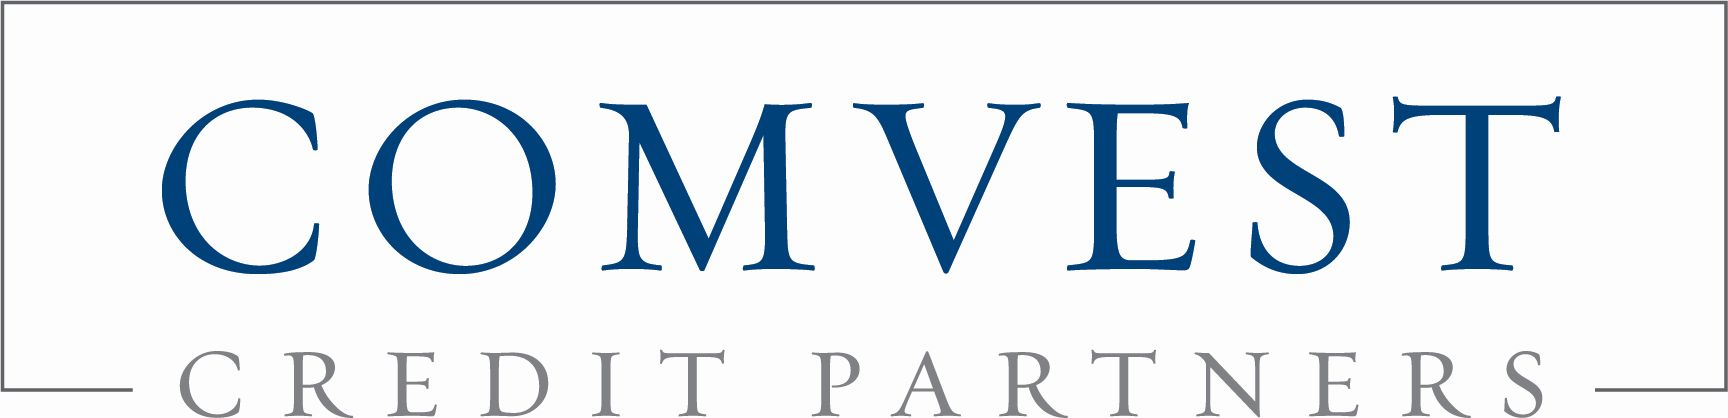 Comvest Credit Partners new Logo.jpg